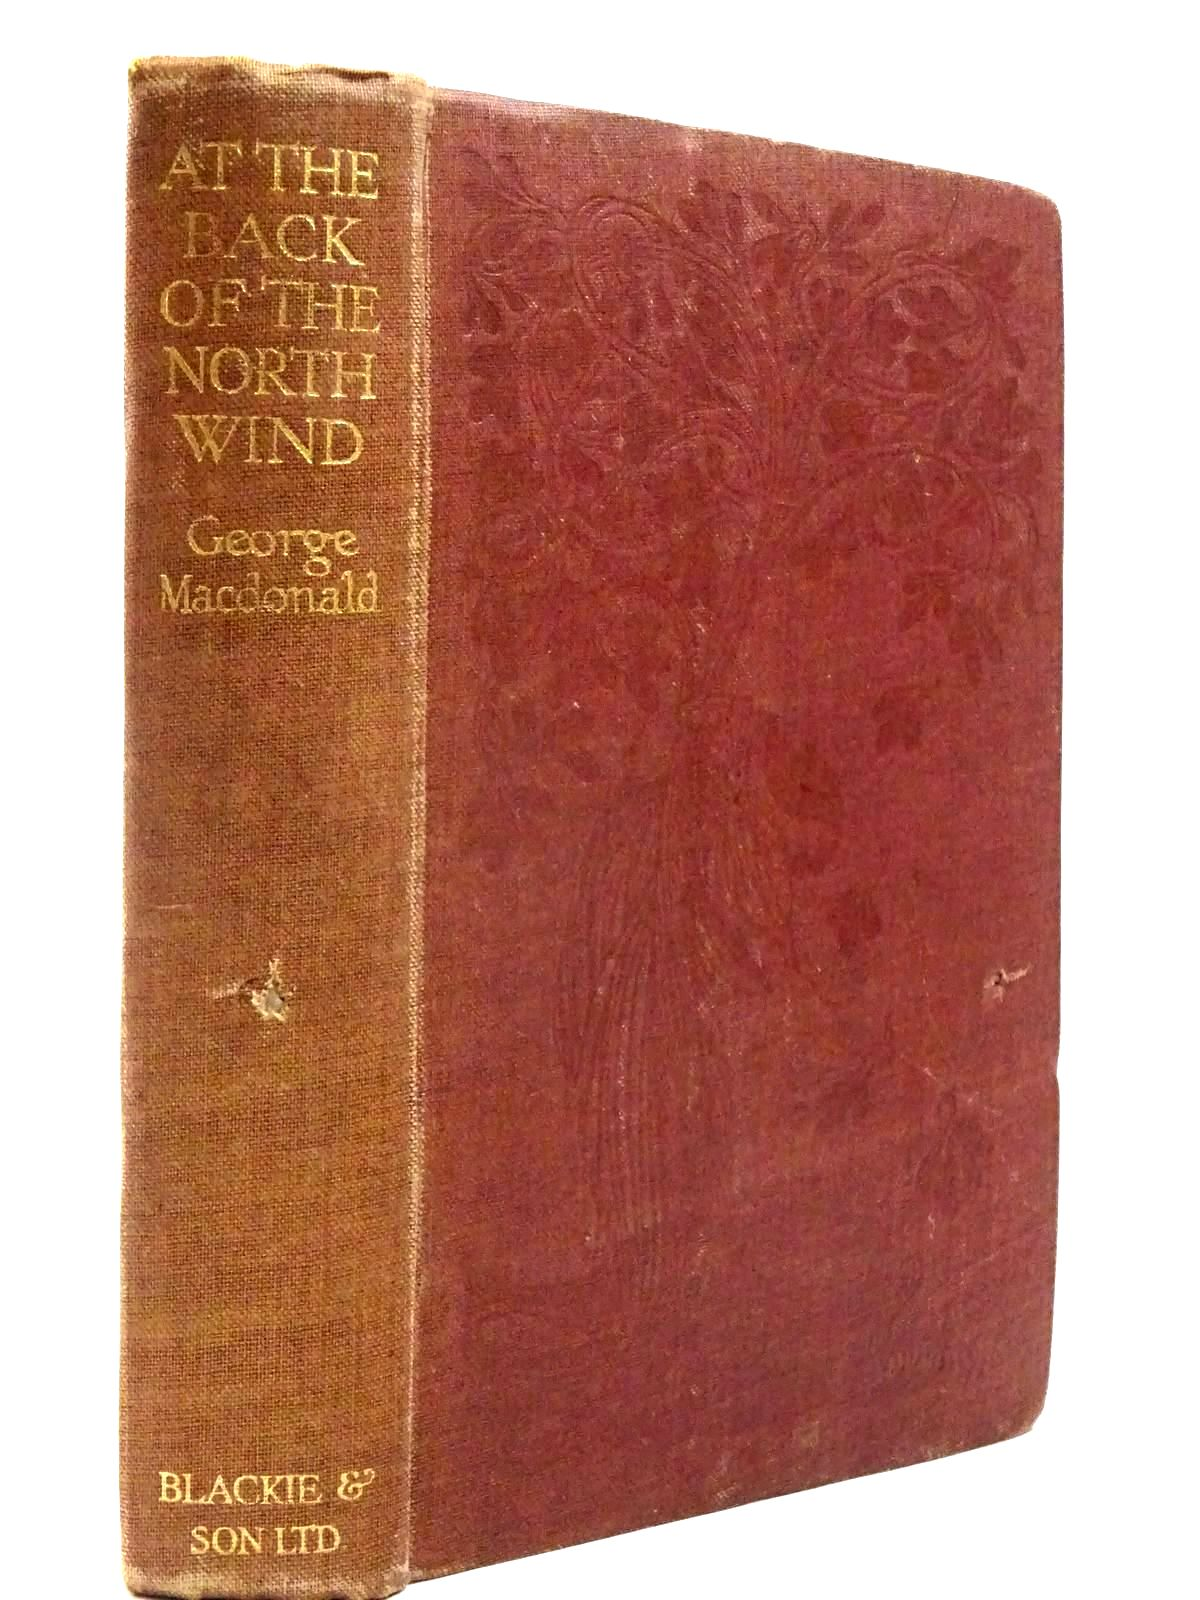 Photo of AT THE BACK OF THE NORTH WIND written by MacDonald, George illustrated by Pape, Frank C. published by Blackie & Son Ltd. (STOCK CODE: 2130202)  for sale by Stella & Rose's Books